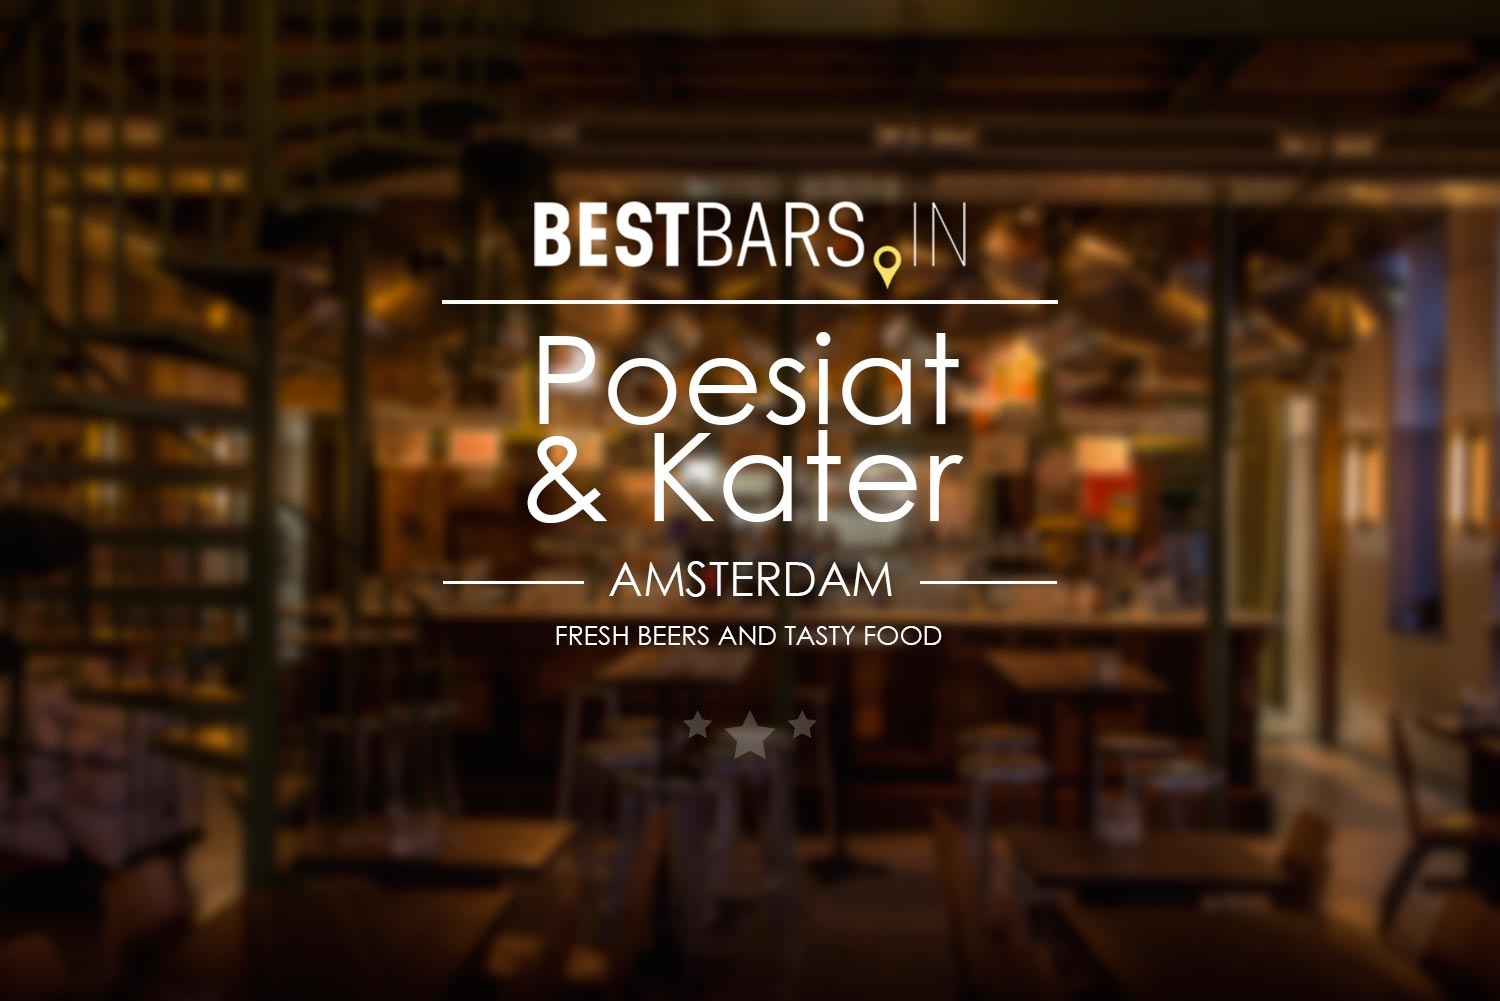 Poesiat & Kater brewery and restaurant in Amsterdam